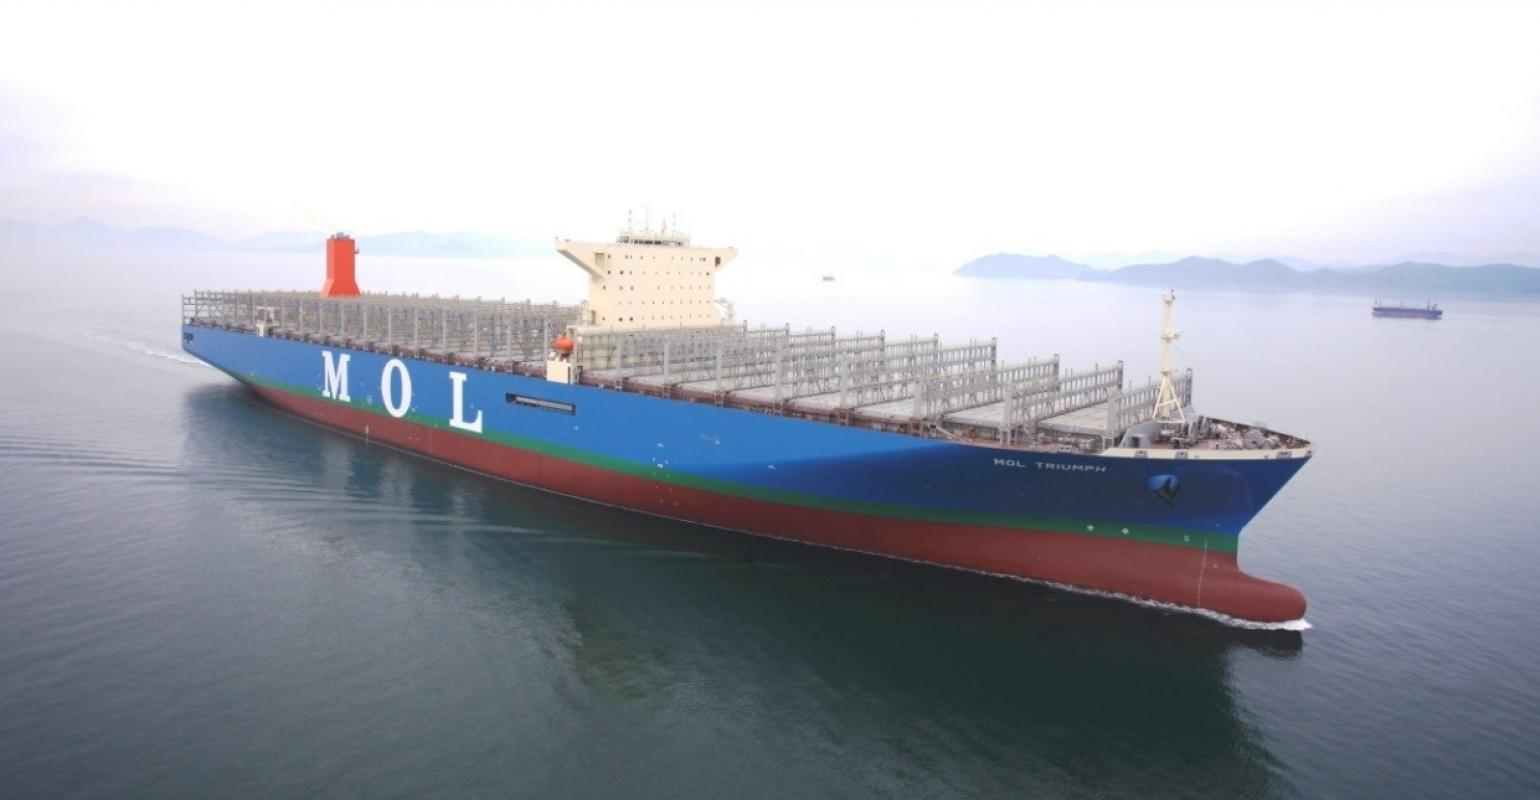 Mitsui O.S.K. Lines agrees to share the data of about 180 MOL ships